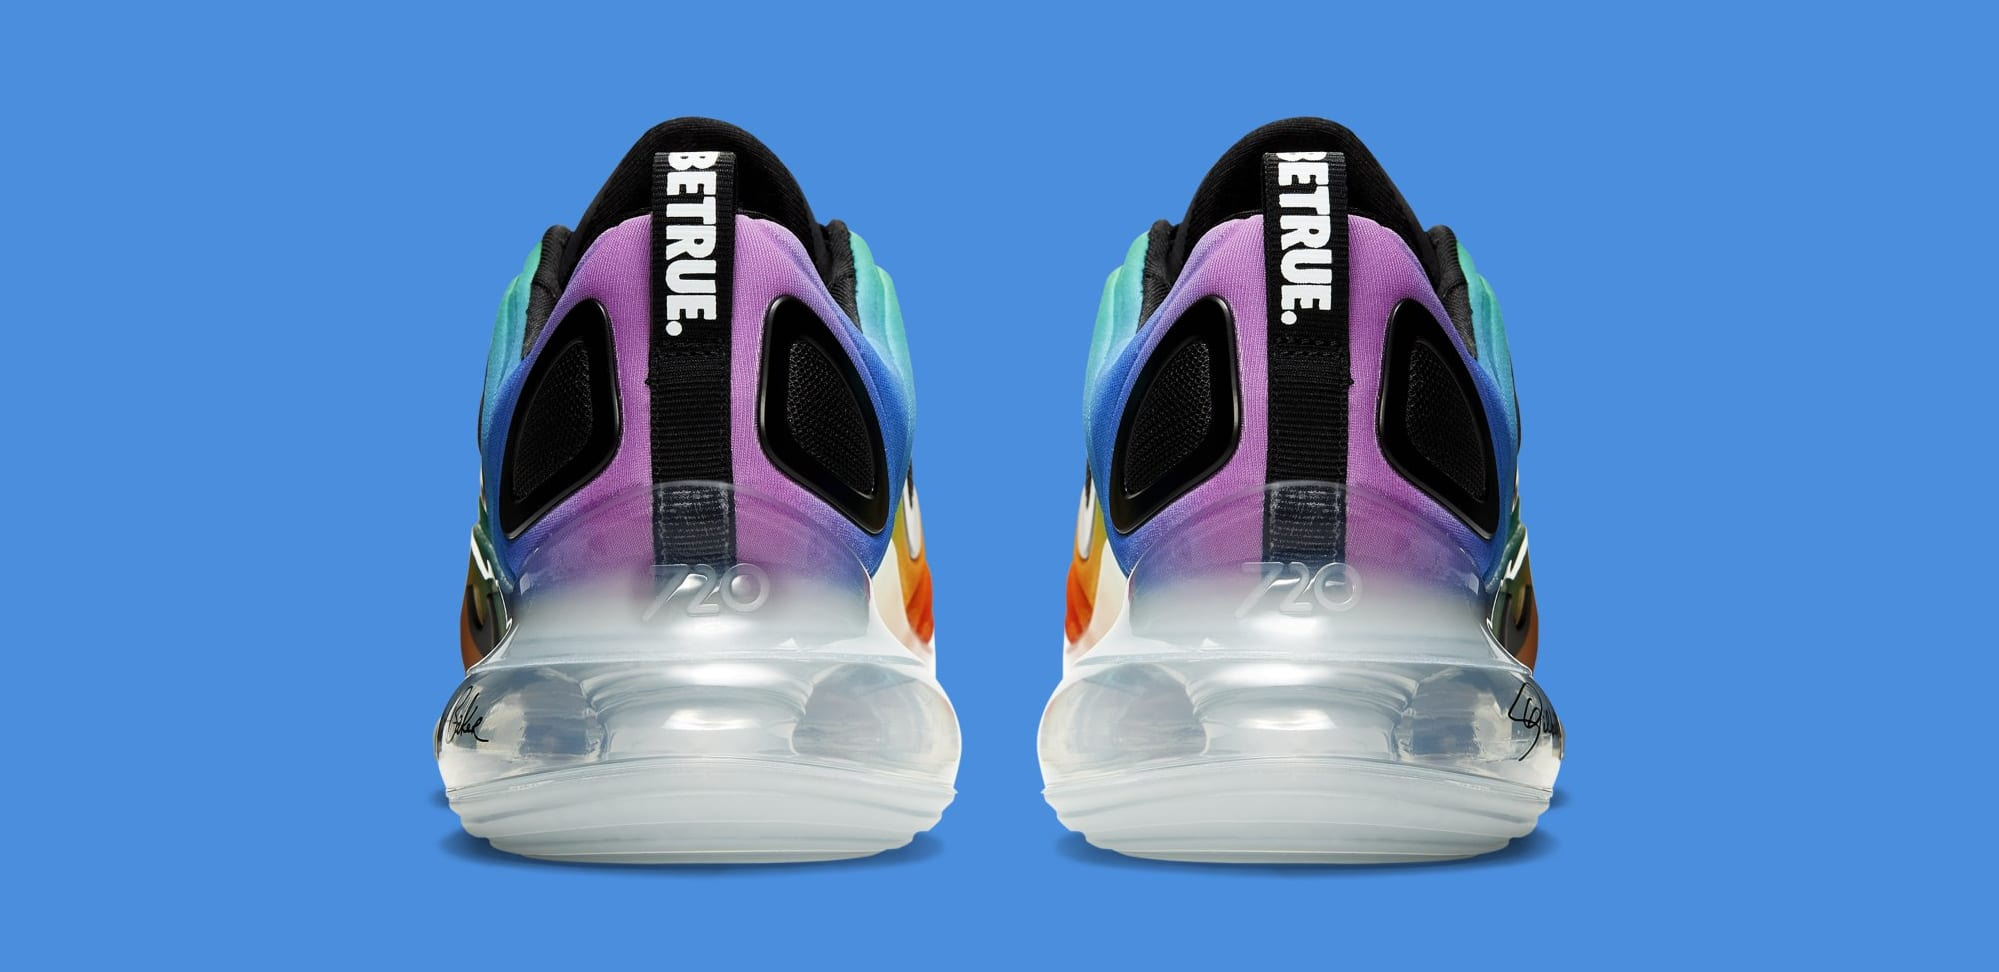 Nike Air Max 720 'Be True' CJ5472-900 (Heel)